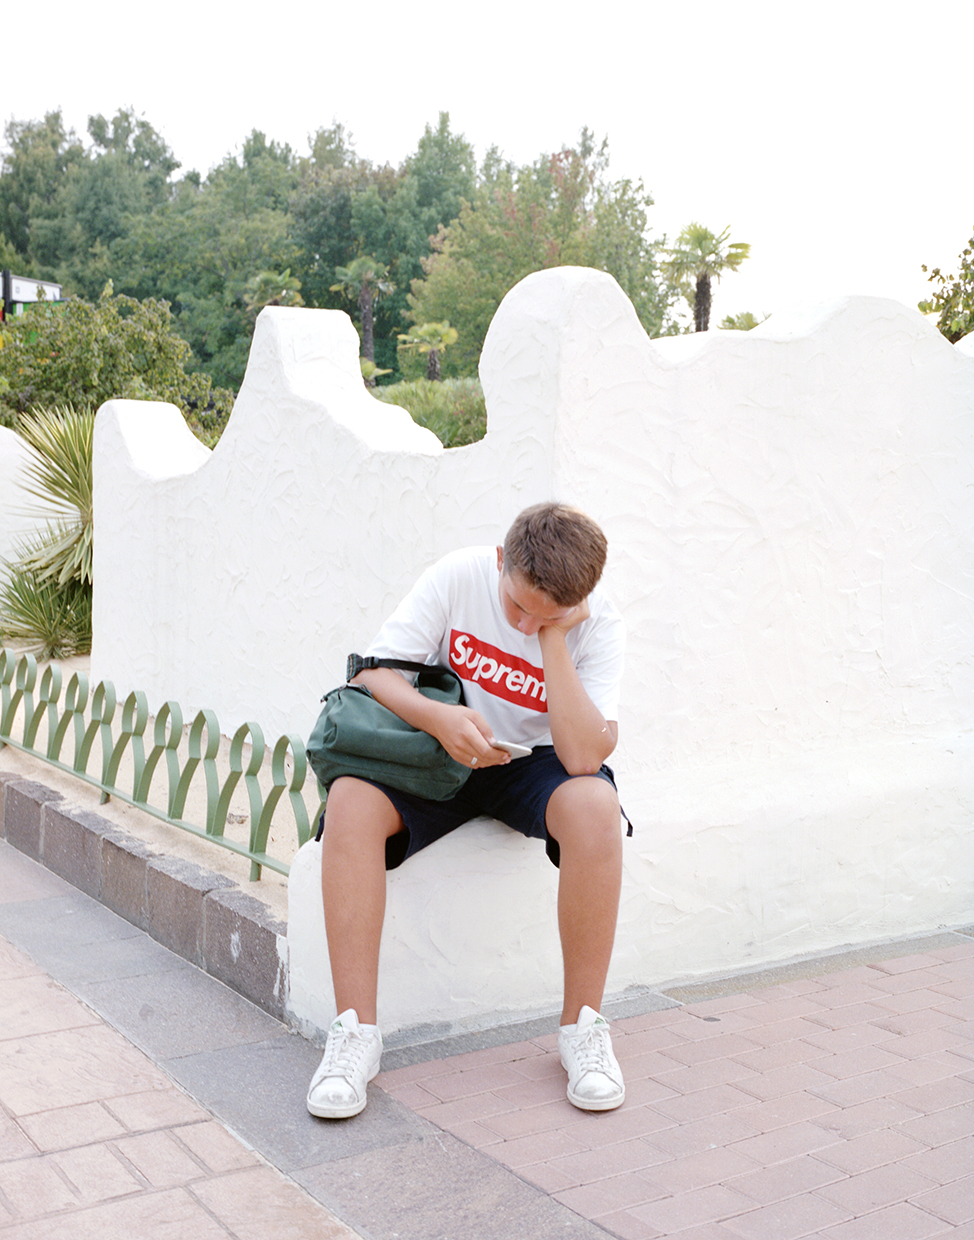 Ronchi, 2017, Italy